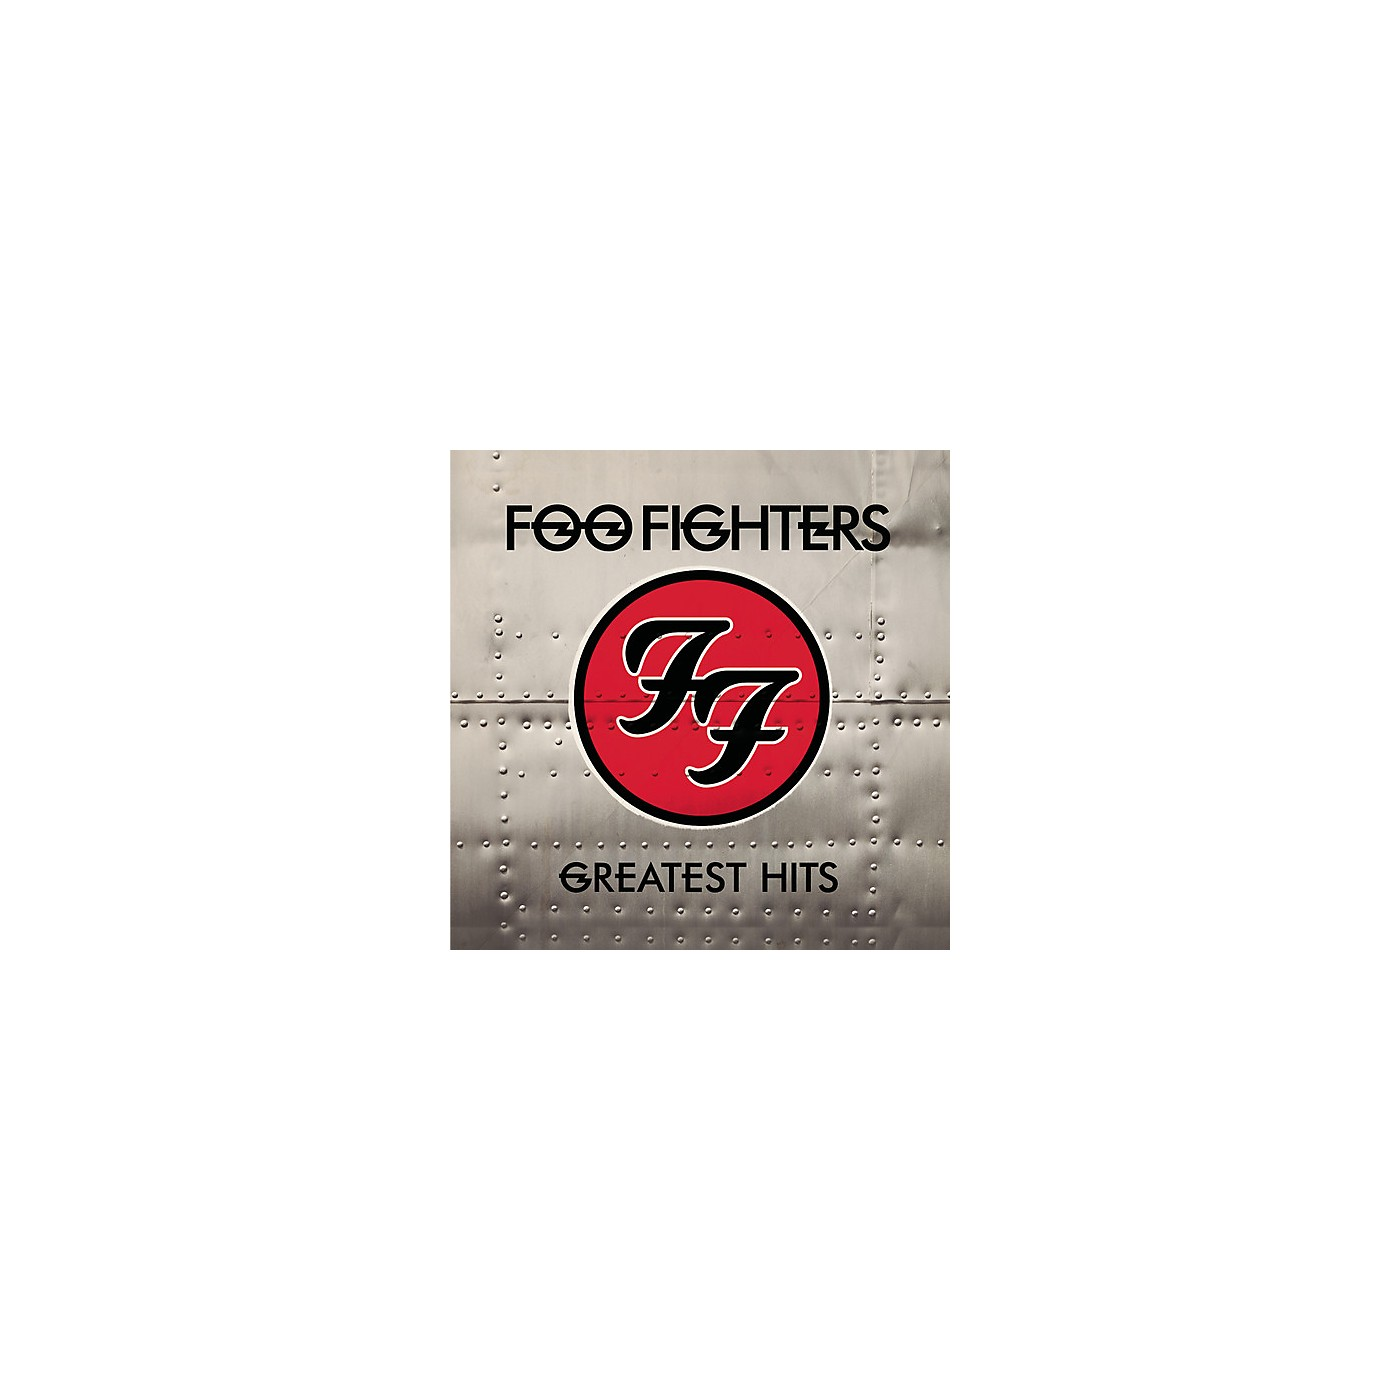 Alliance Foo Fighters - Greatest Hits (CD) thumbnail